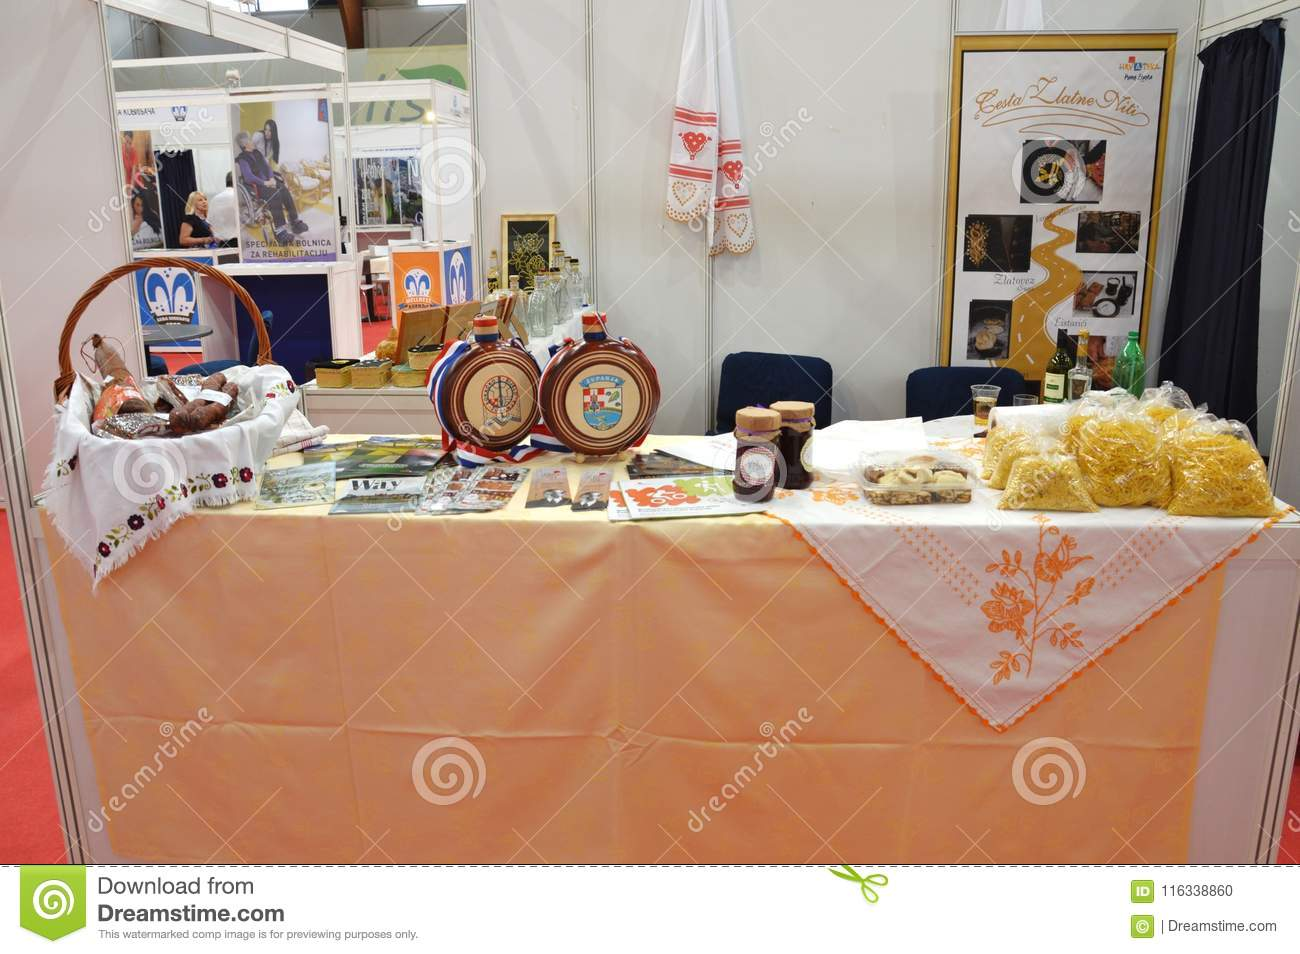 Product And Handiwork From Exhibitors Editorial Image - Image of